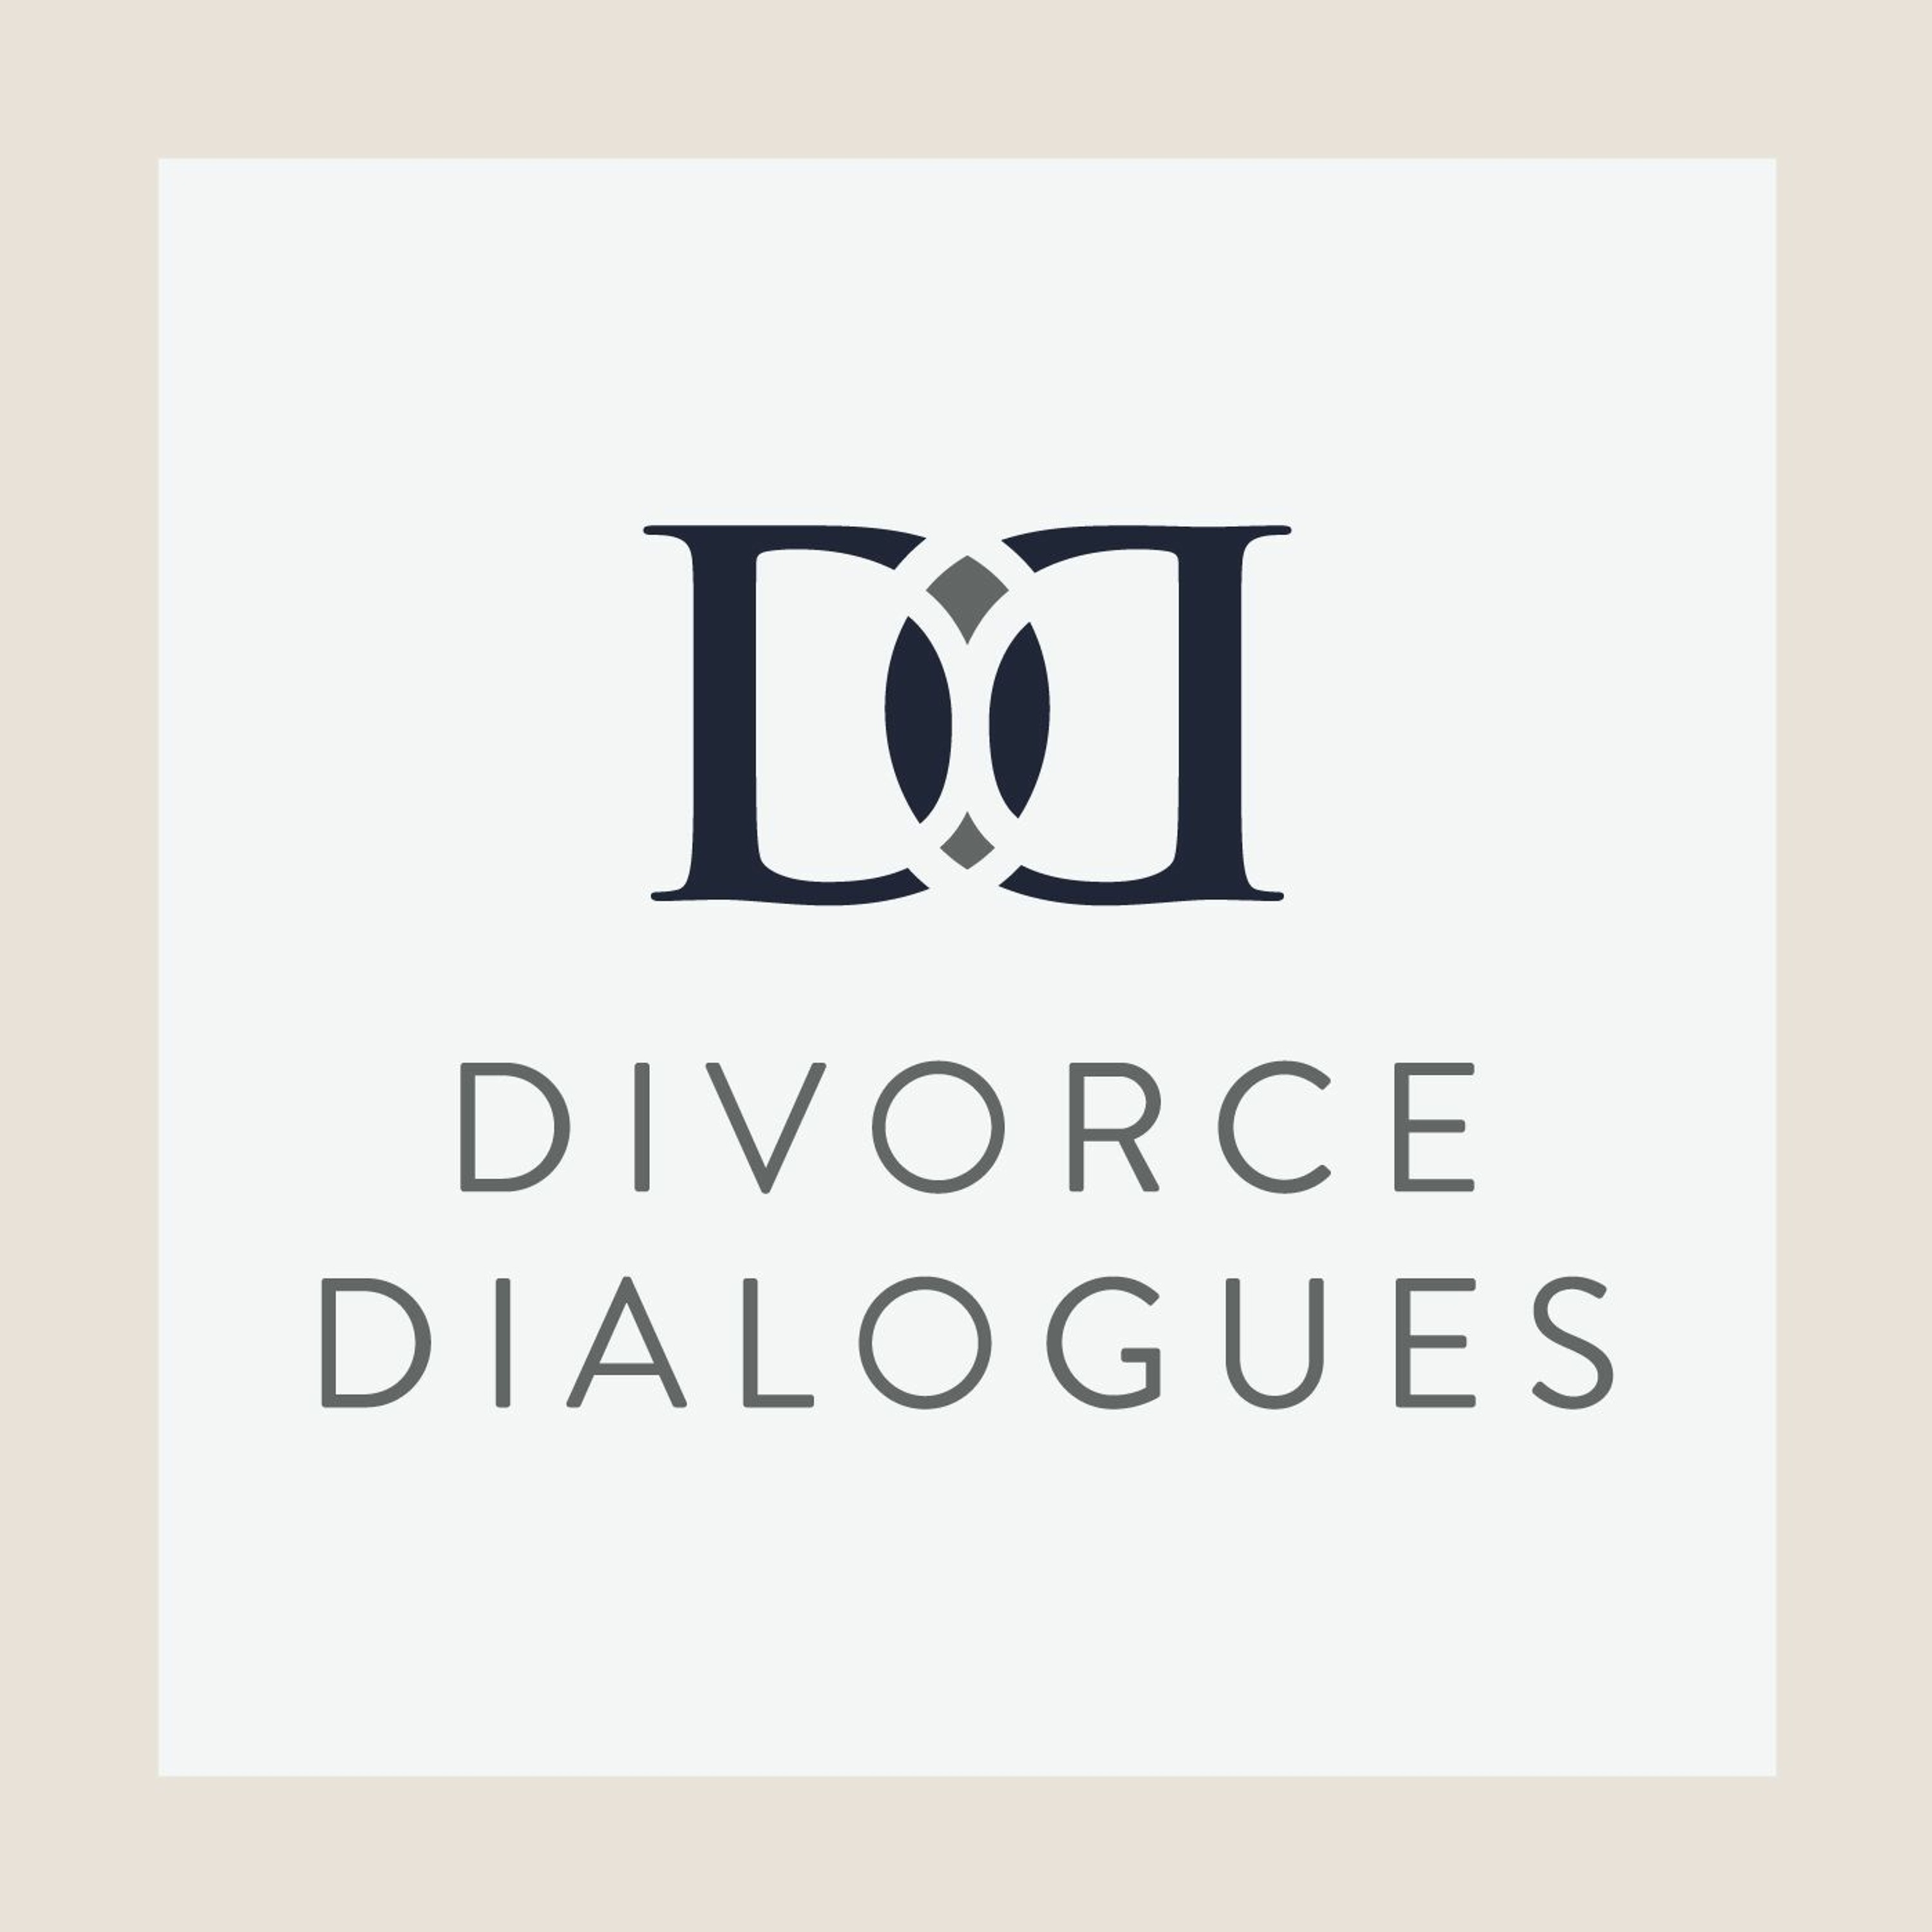 Divorce Dialogues - The Bipartisan Budget Act & Changes to Social Security with Gayle Lob